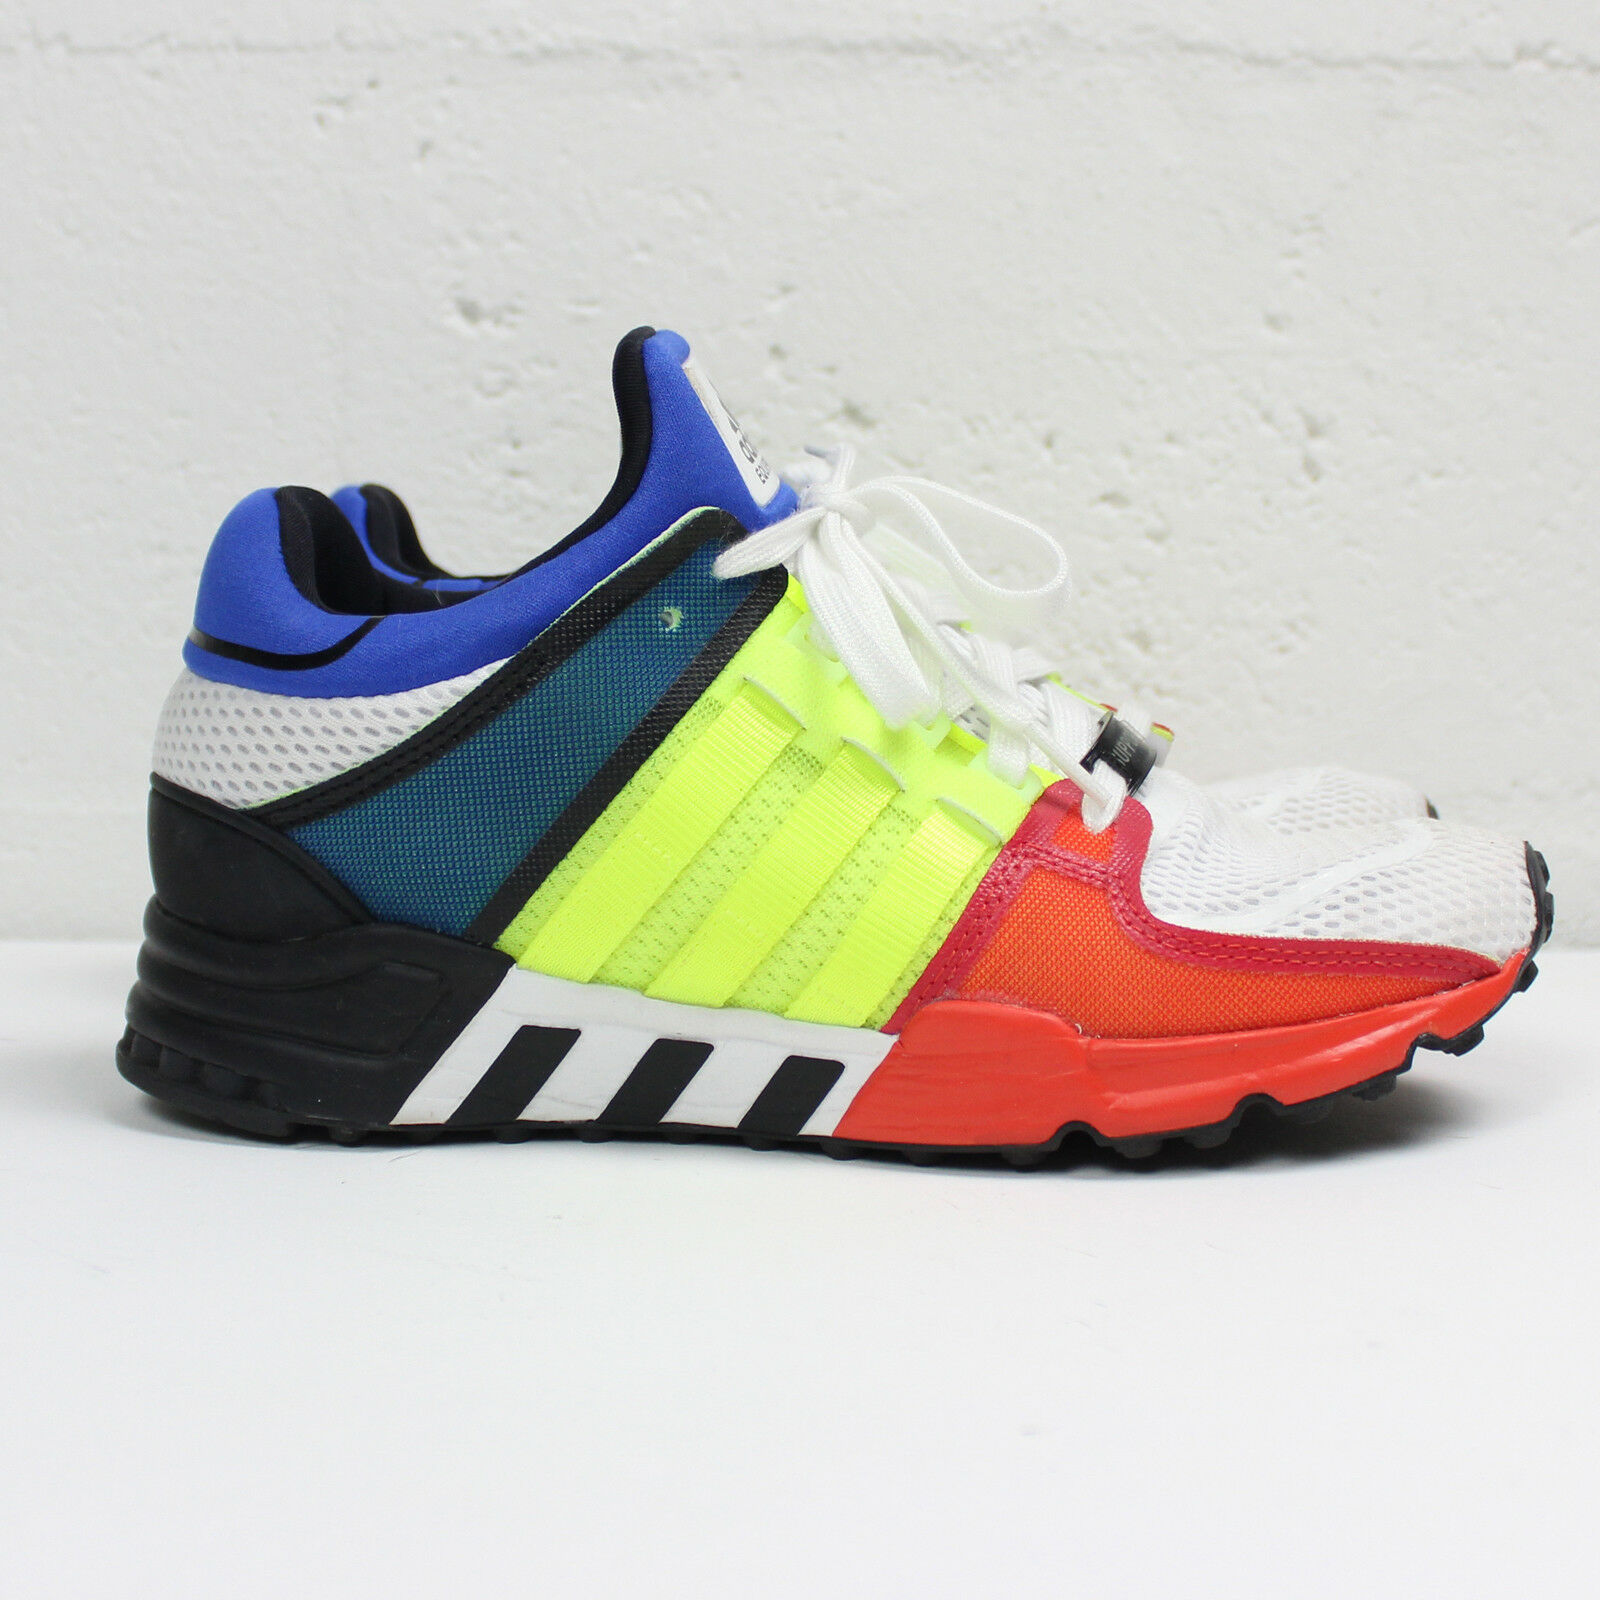 Adidas Equipment Running Support EQT Size 7.5 colorblock S81483